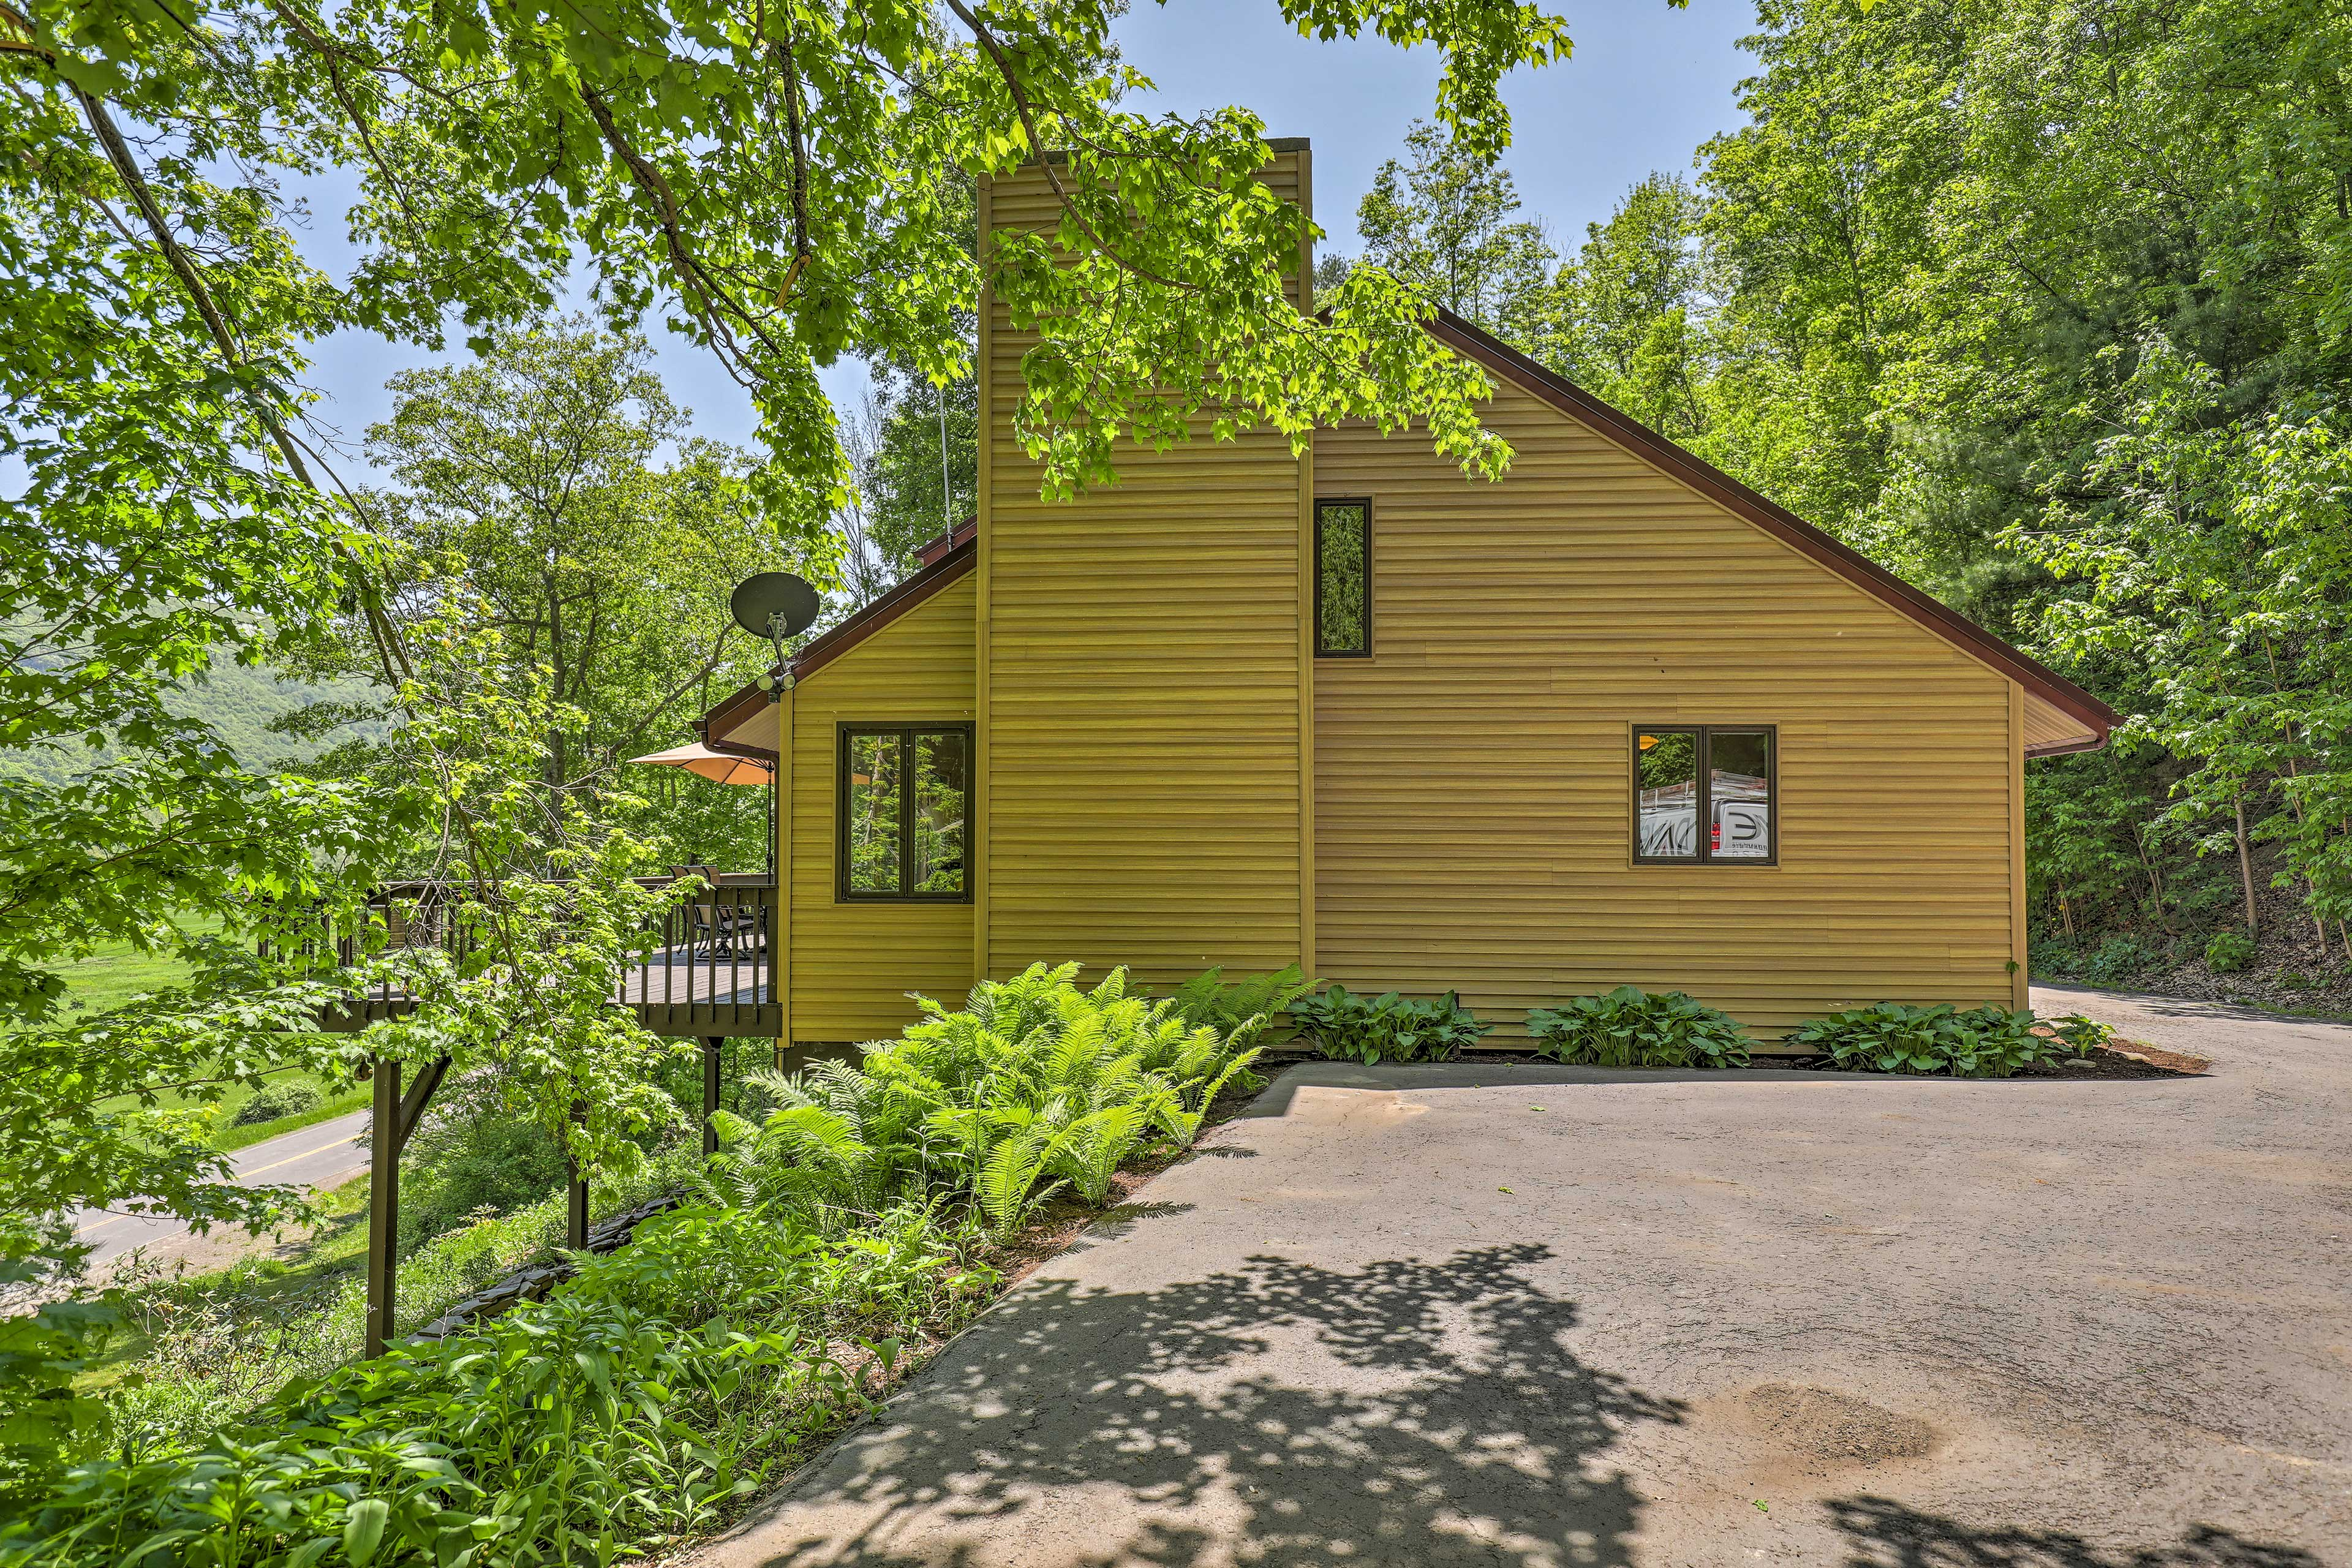 The house is nestled on 6 private acres of lush forest landscape.